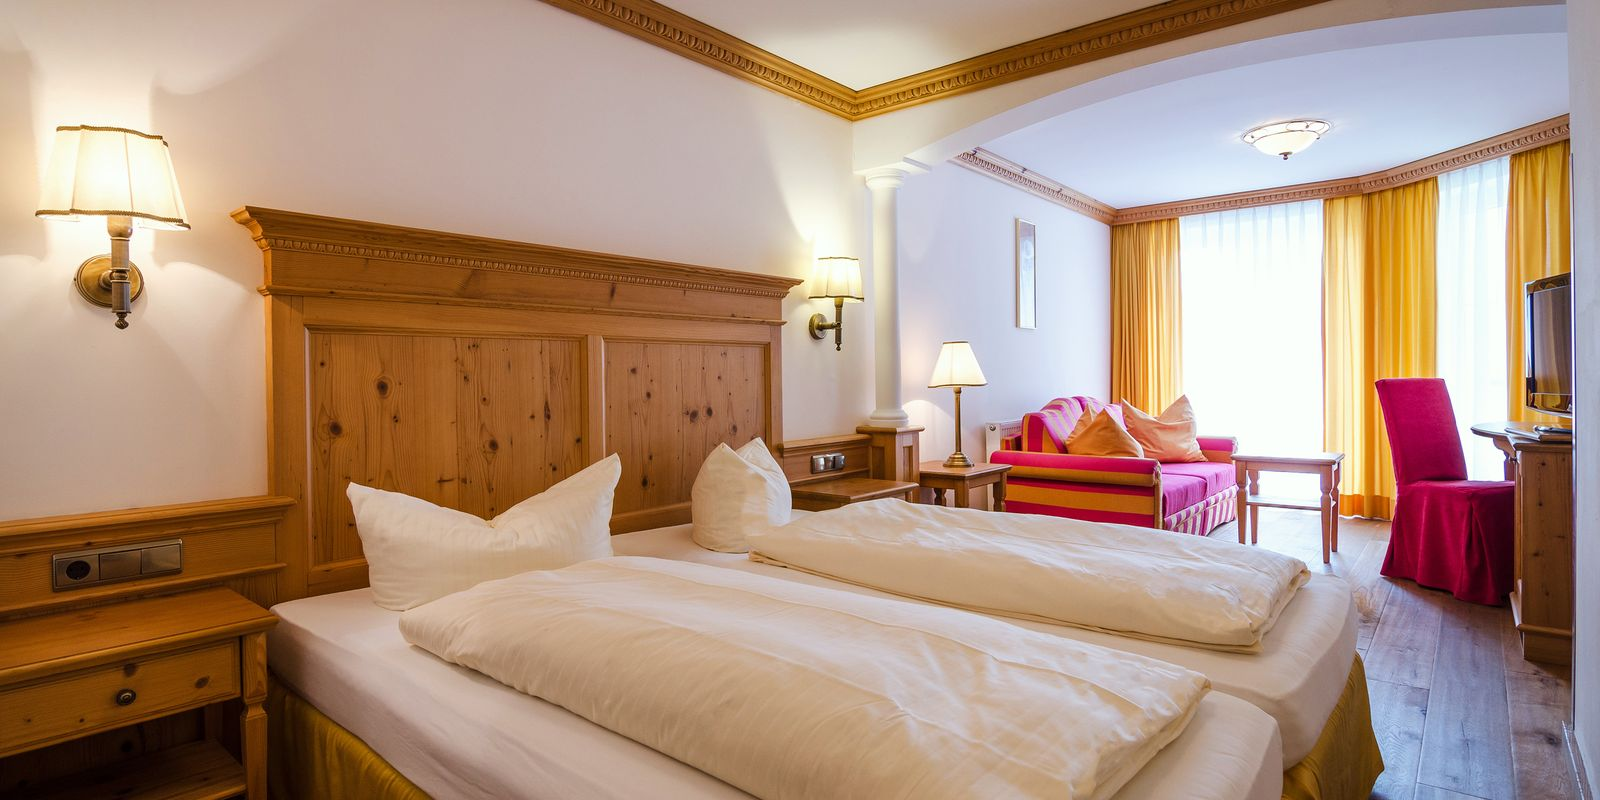 Junior Suite im Hotel Central Gerlos